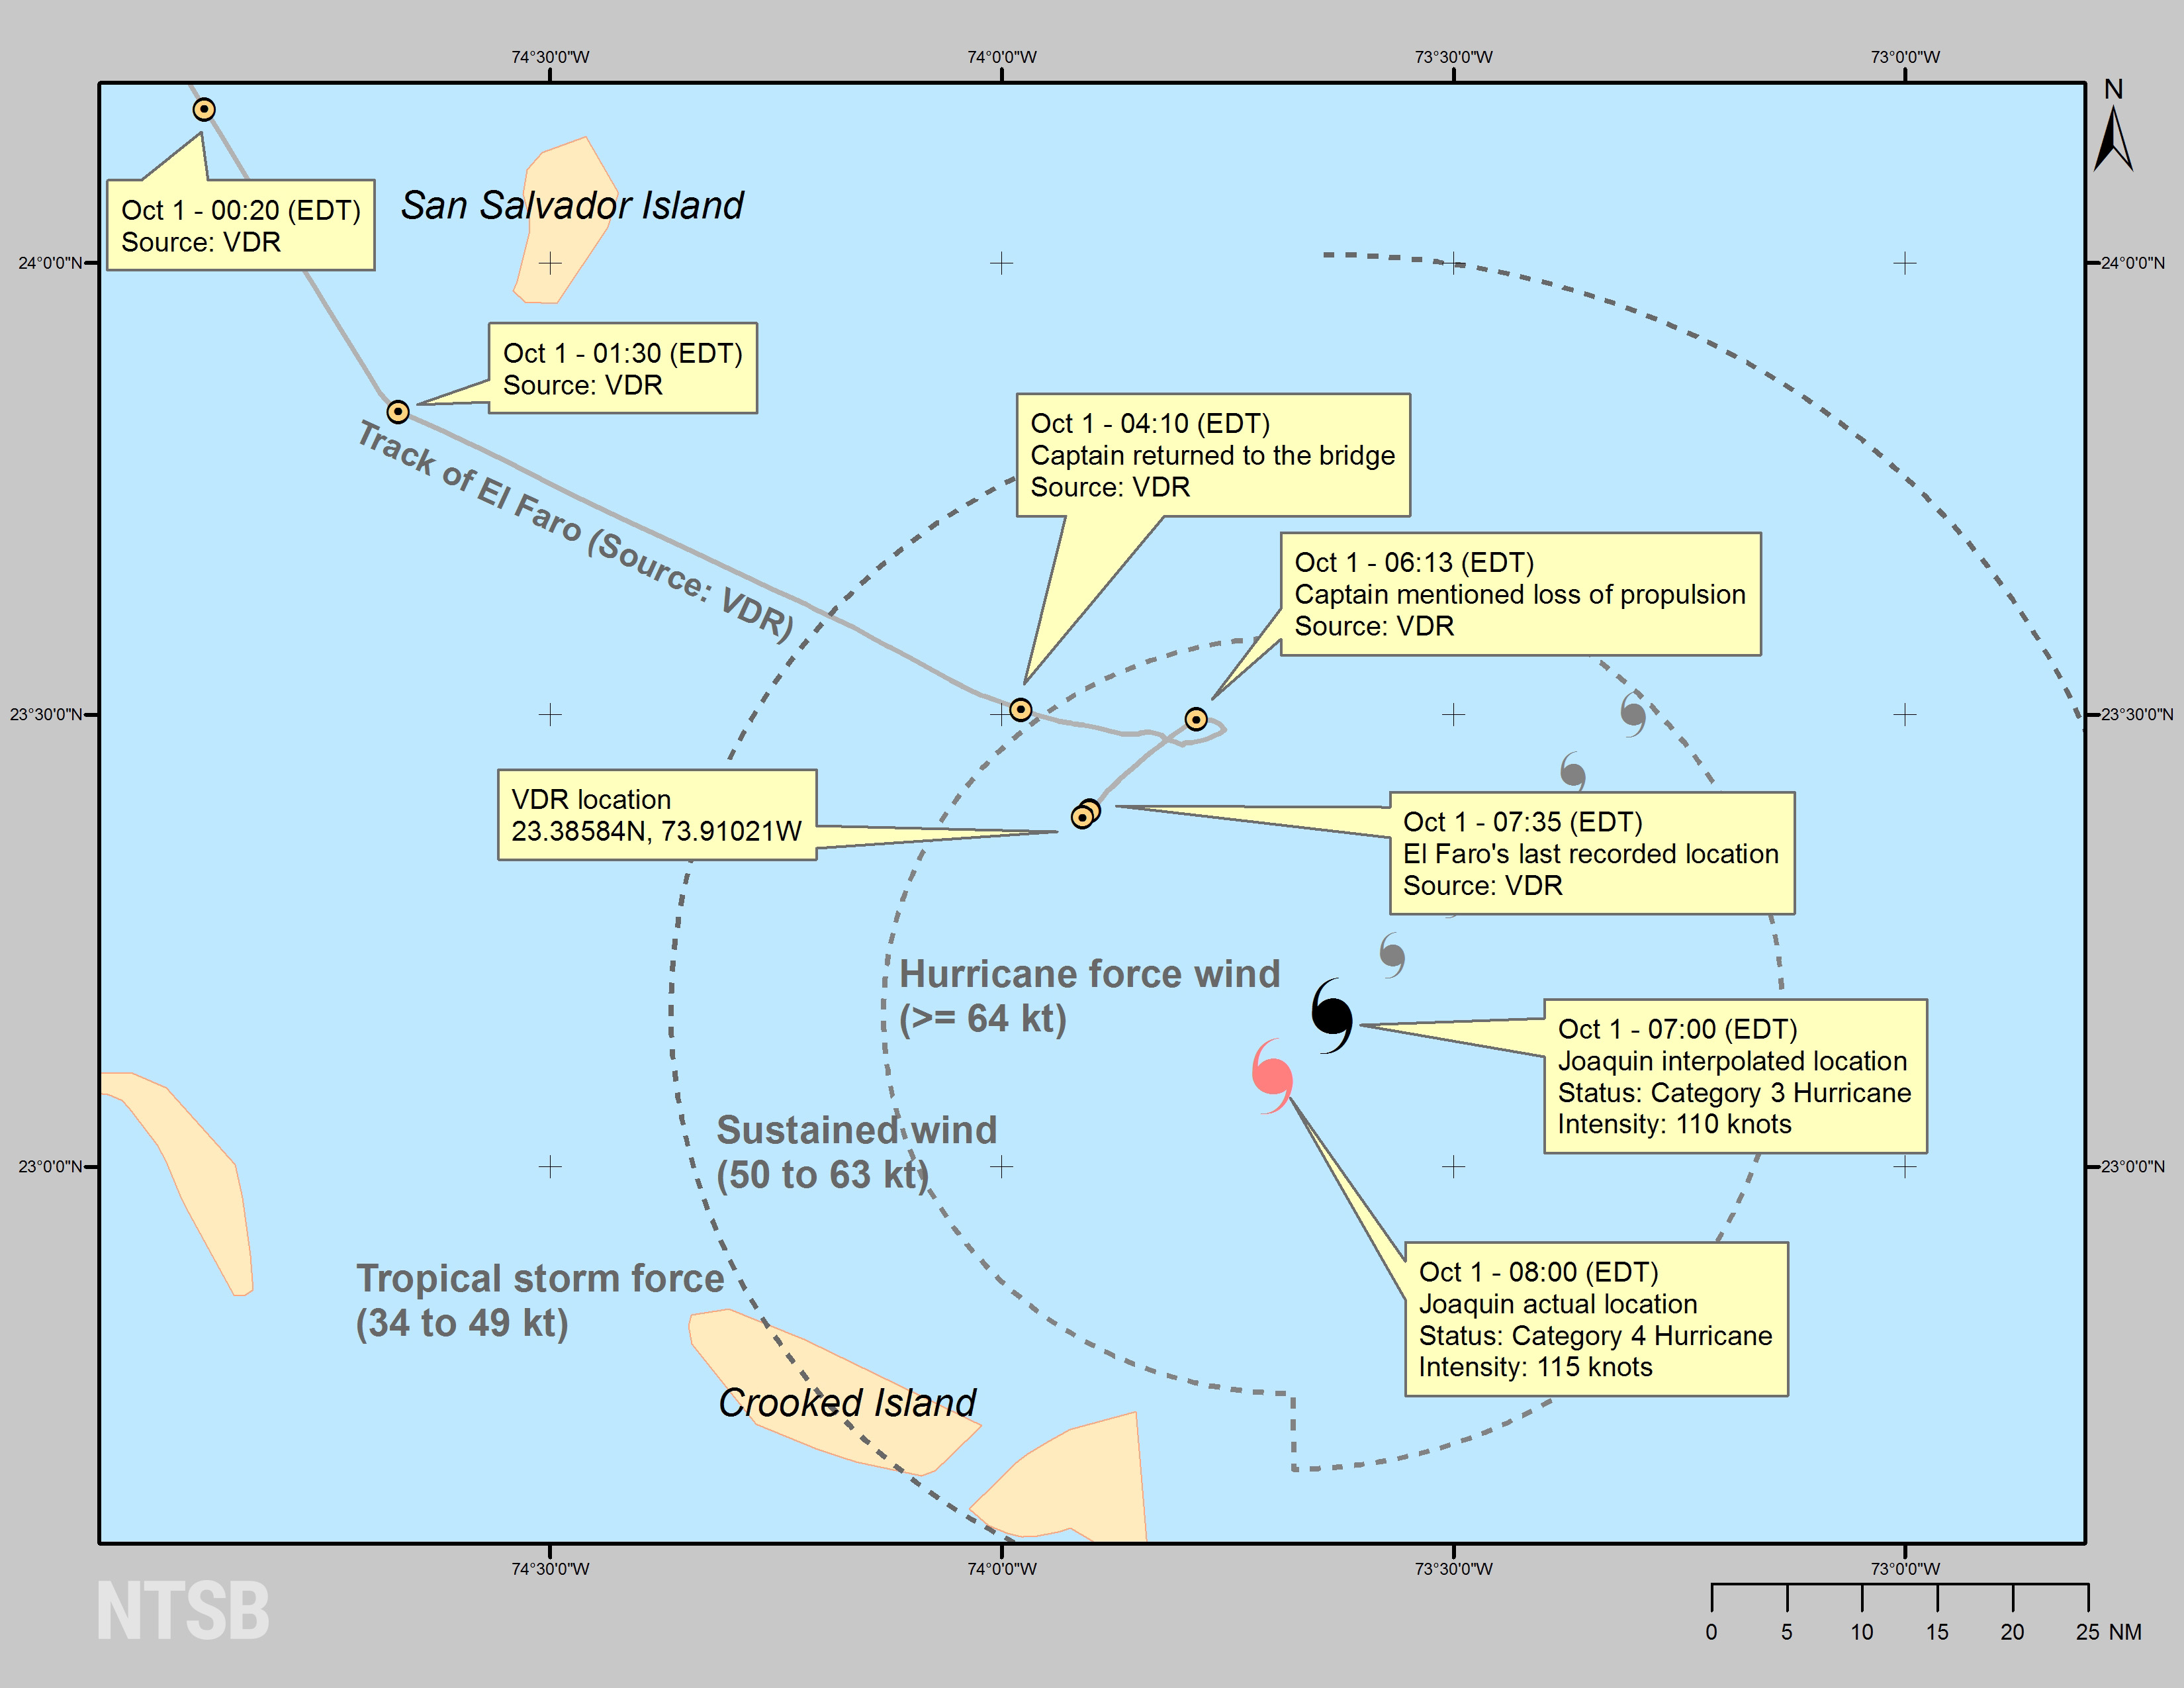 This graphic depicts the locations of the <i>El Faro</i> Oct. 1, 2015, relative to the locations of Hurricane Joaquin.